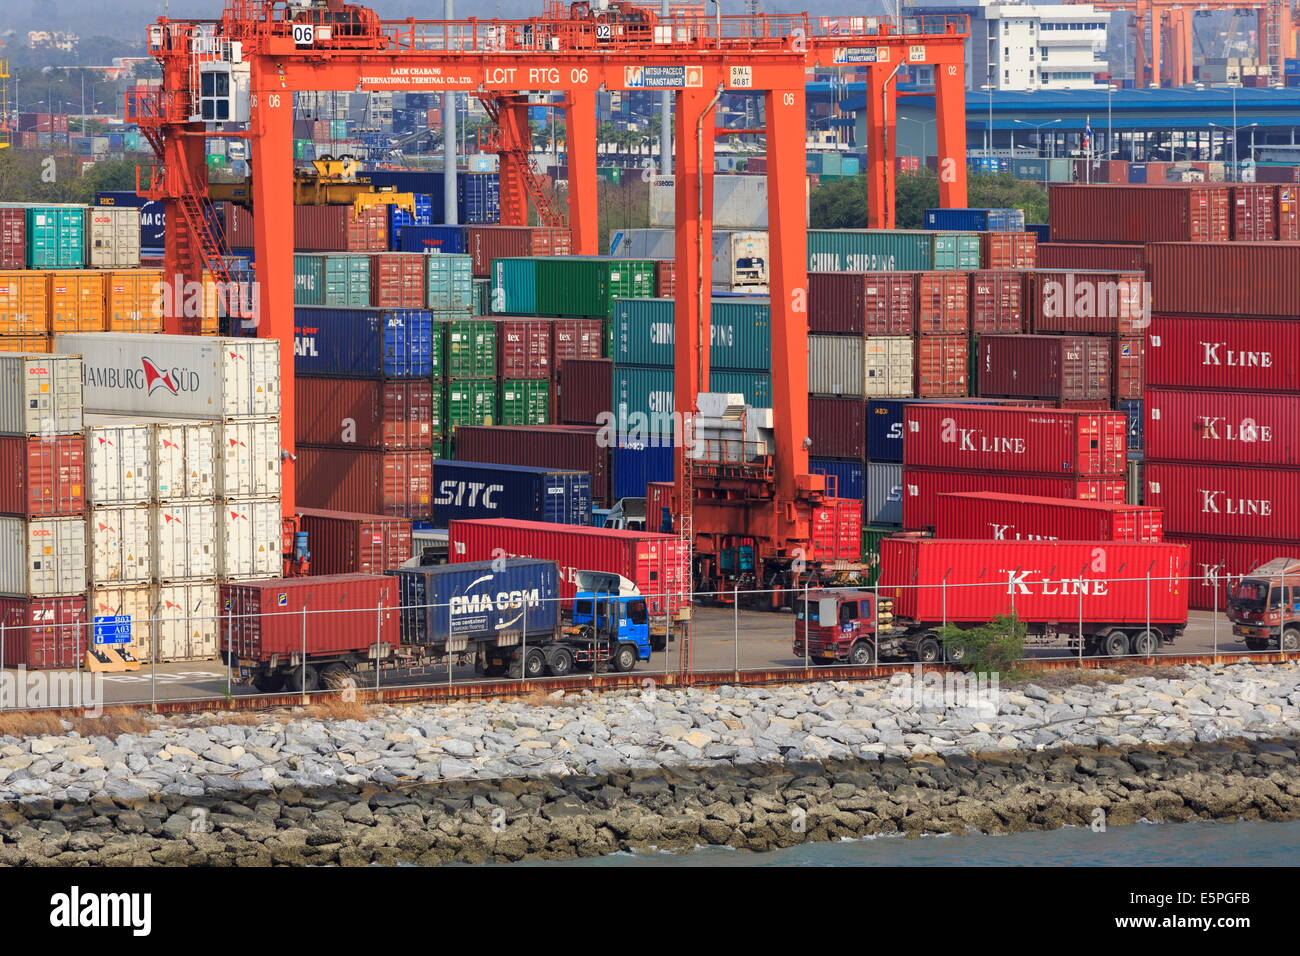 Containers in Laem Chabang Port, Laem Chabang City, Thailand, Southeast Asia, Asia - Stock Image